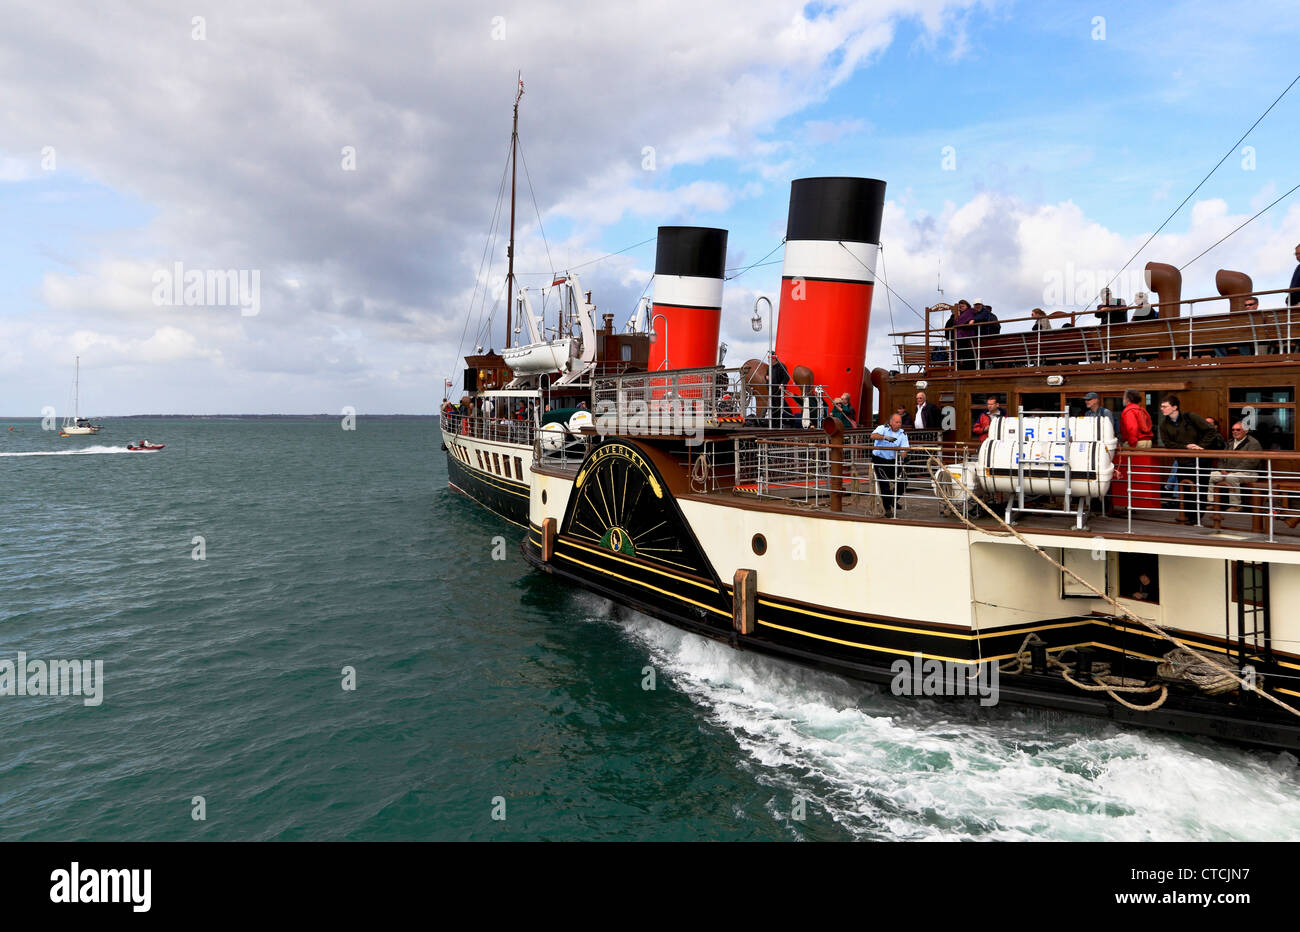 4166. The Waverley Paddle-Steamer leaving Yarmouth Pier, Isle of Wight, UK - Stock Image